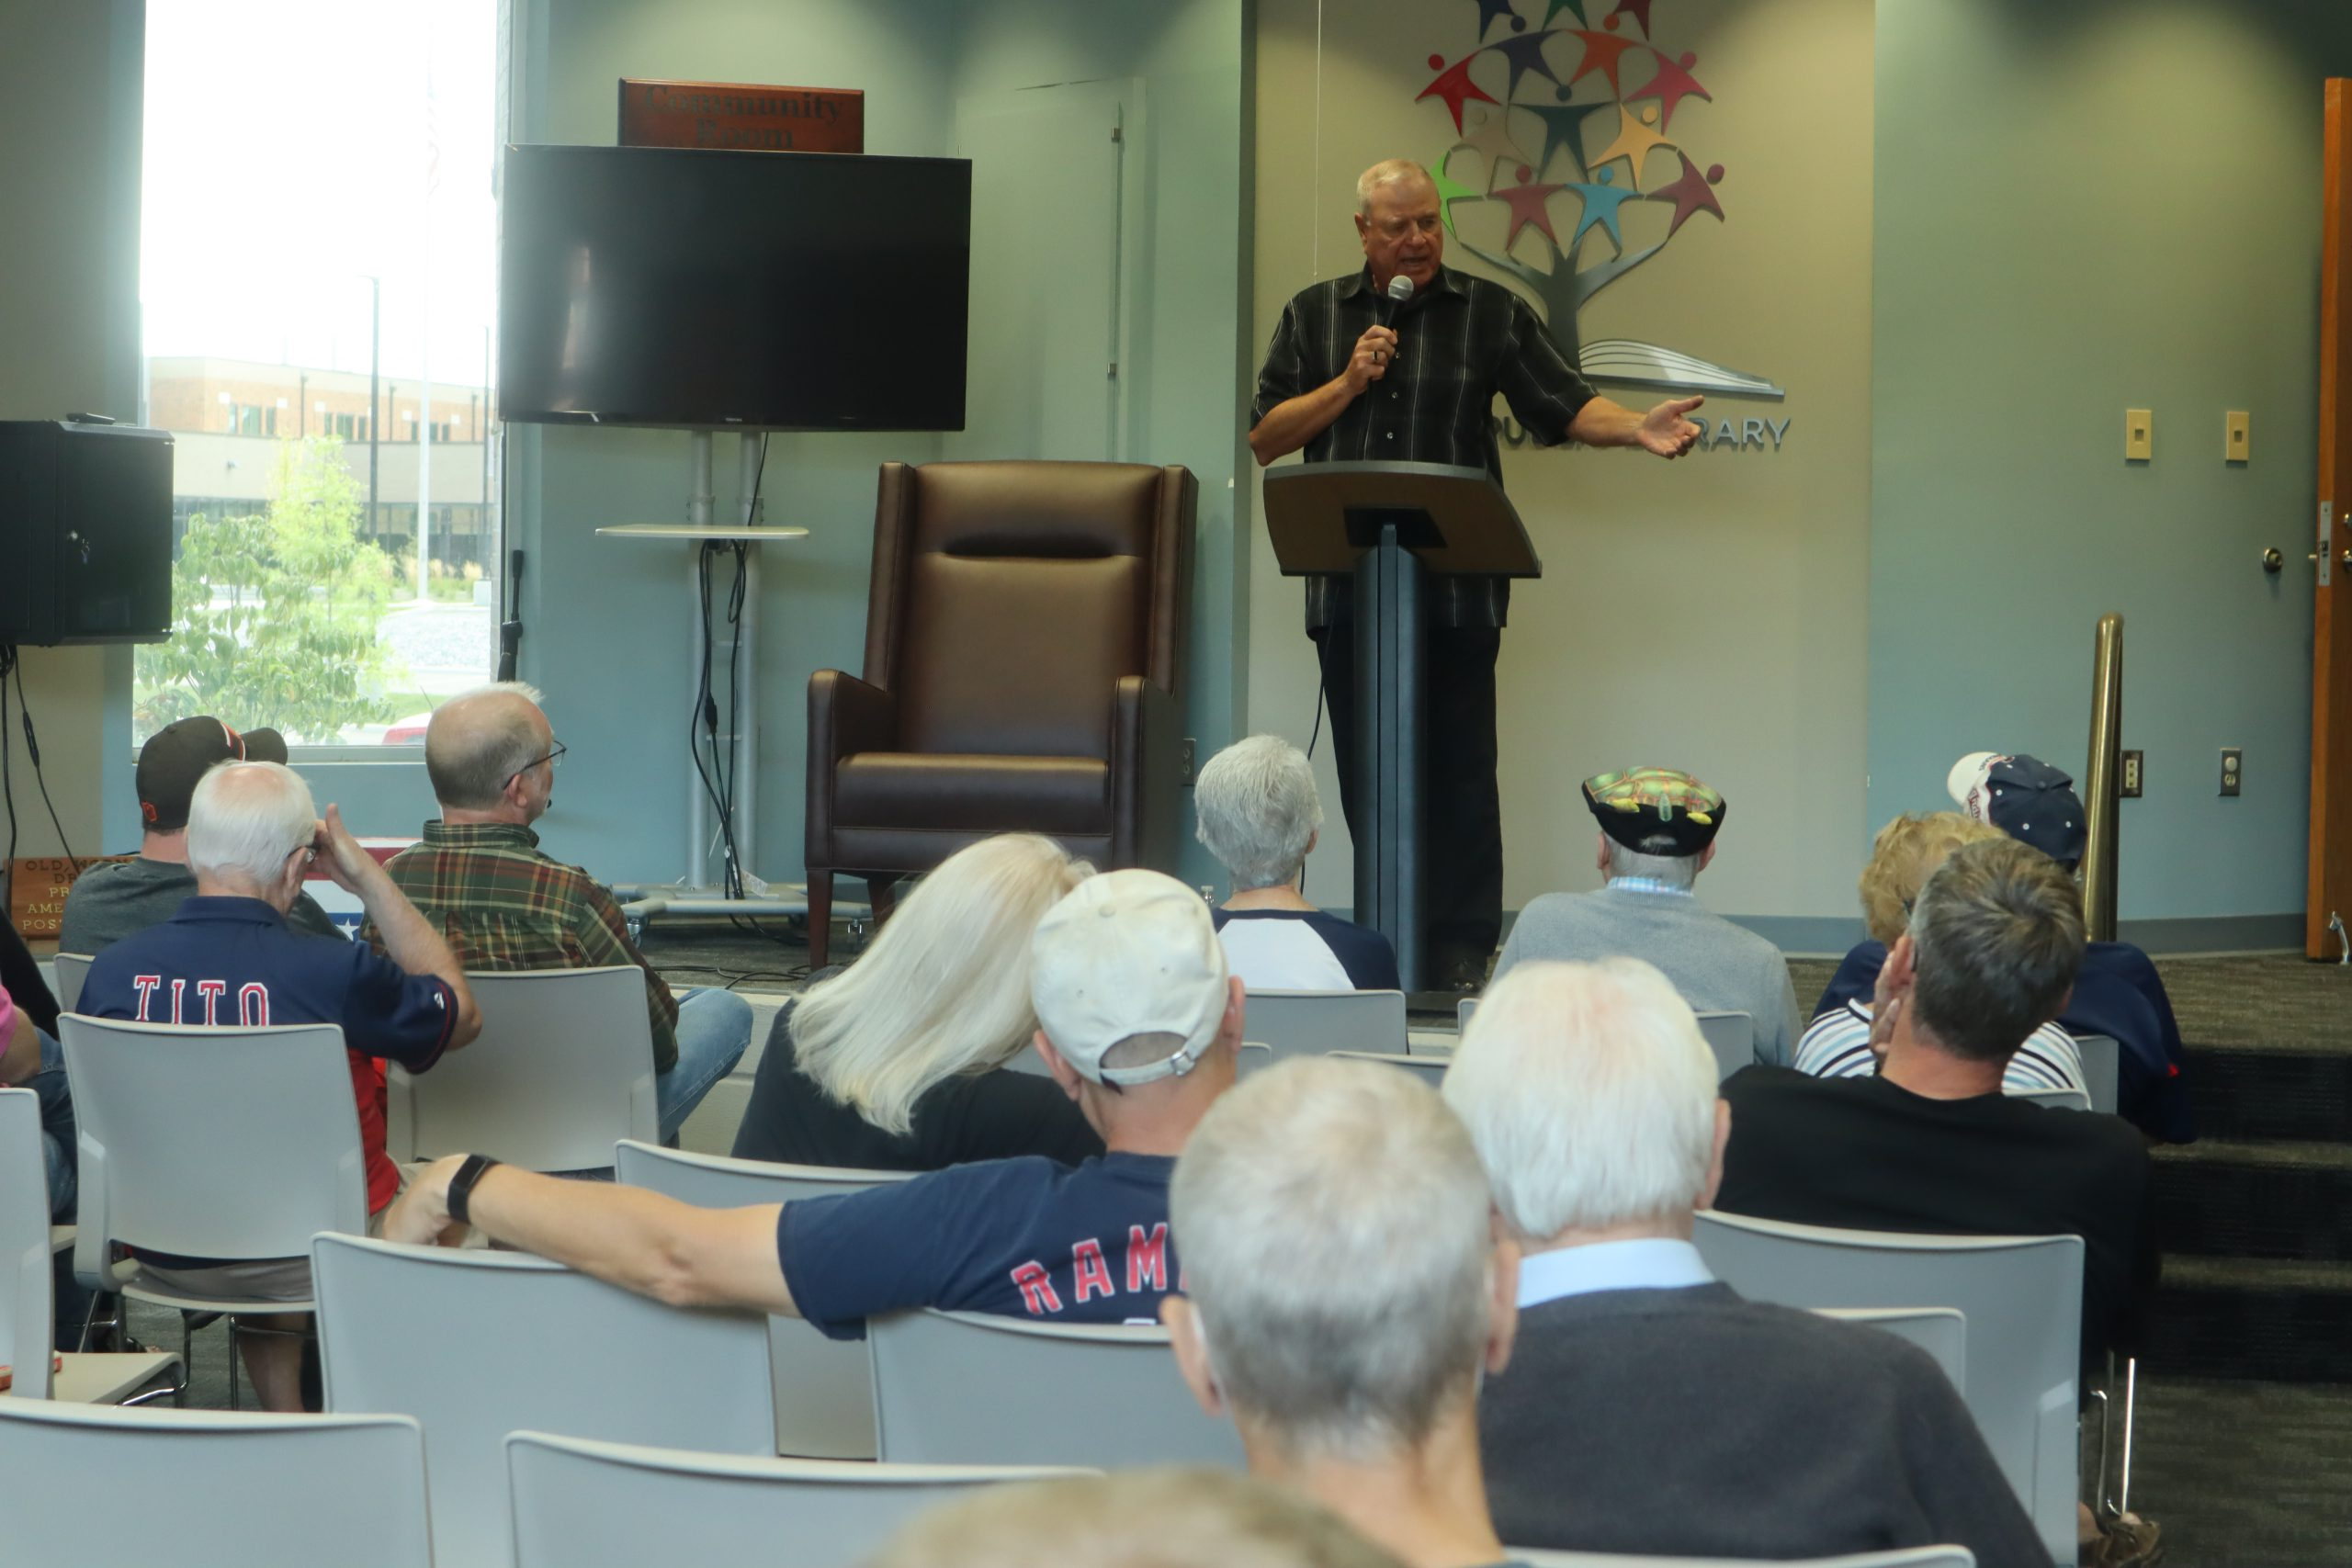 Bruce Drennan speaks to an audience at the Dover Public Library on Saturday, September 4, 2021.